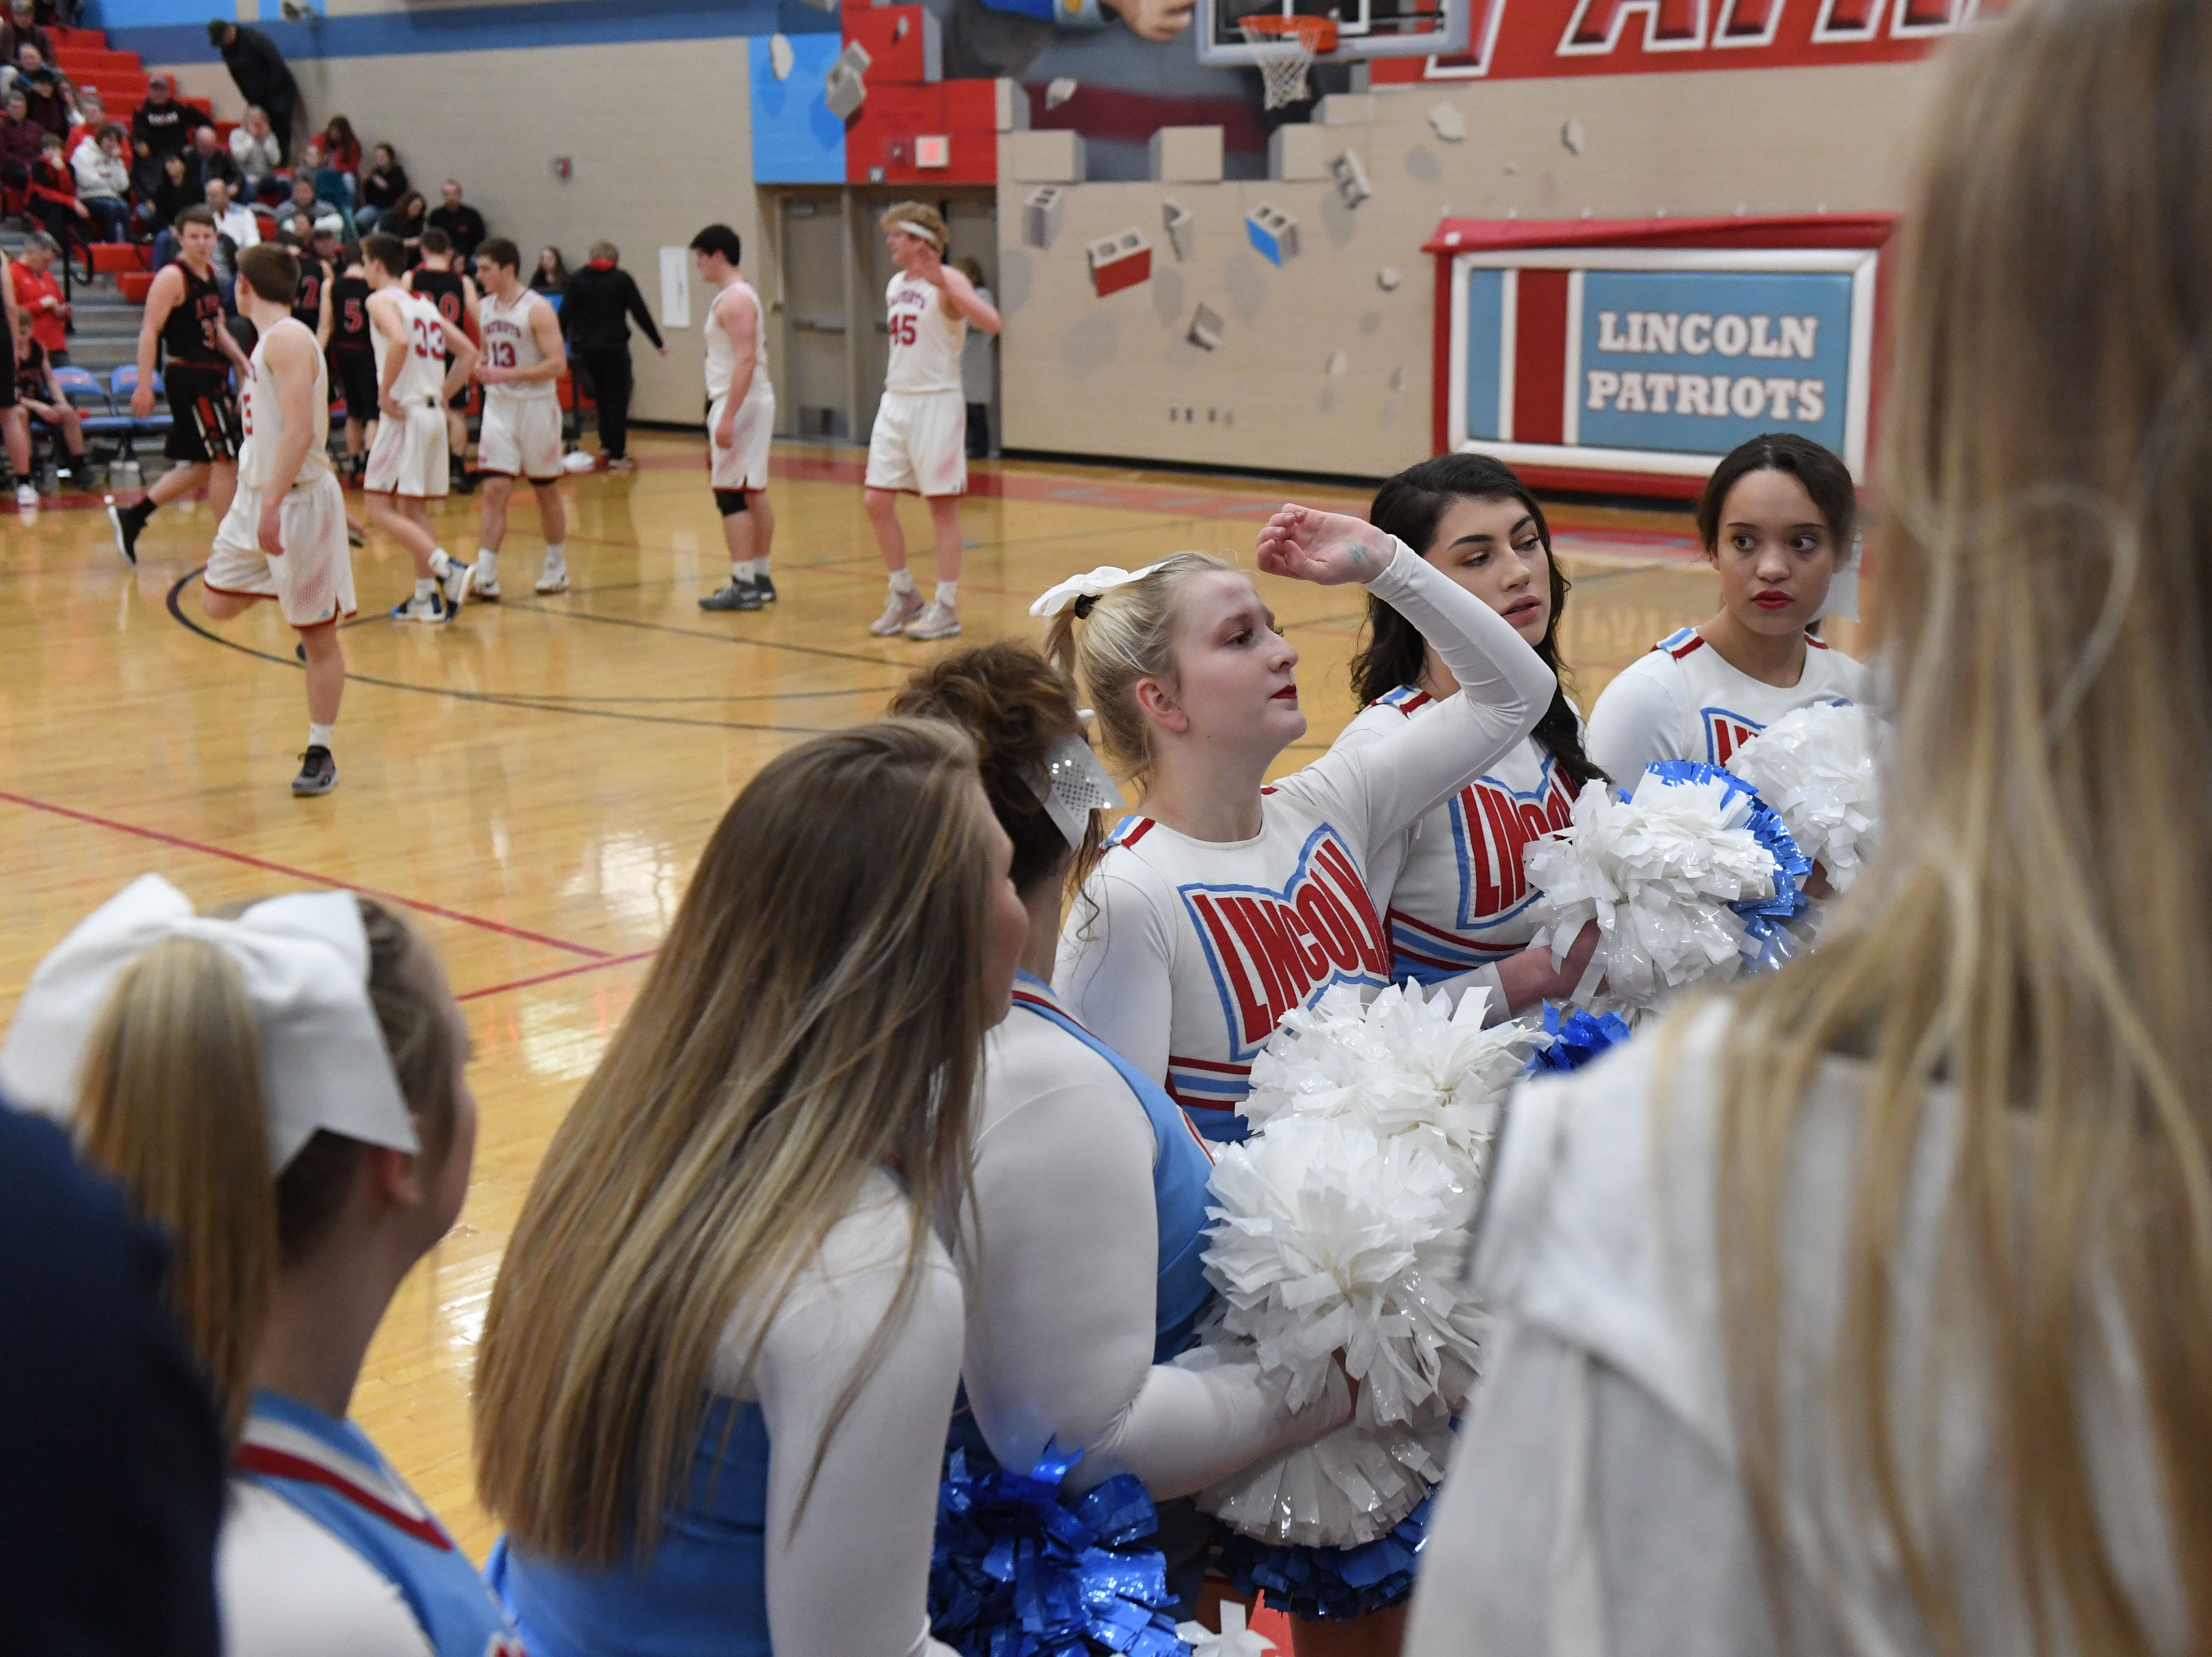 Lincoln cheerleaders engage with the crowd during a game against Brandon Valley in Sioux Falls, S.D., Tuesday, Feb. 5, 2019.